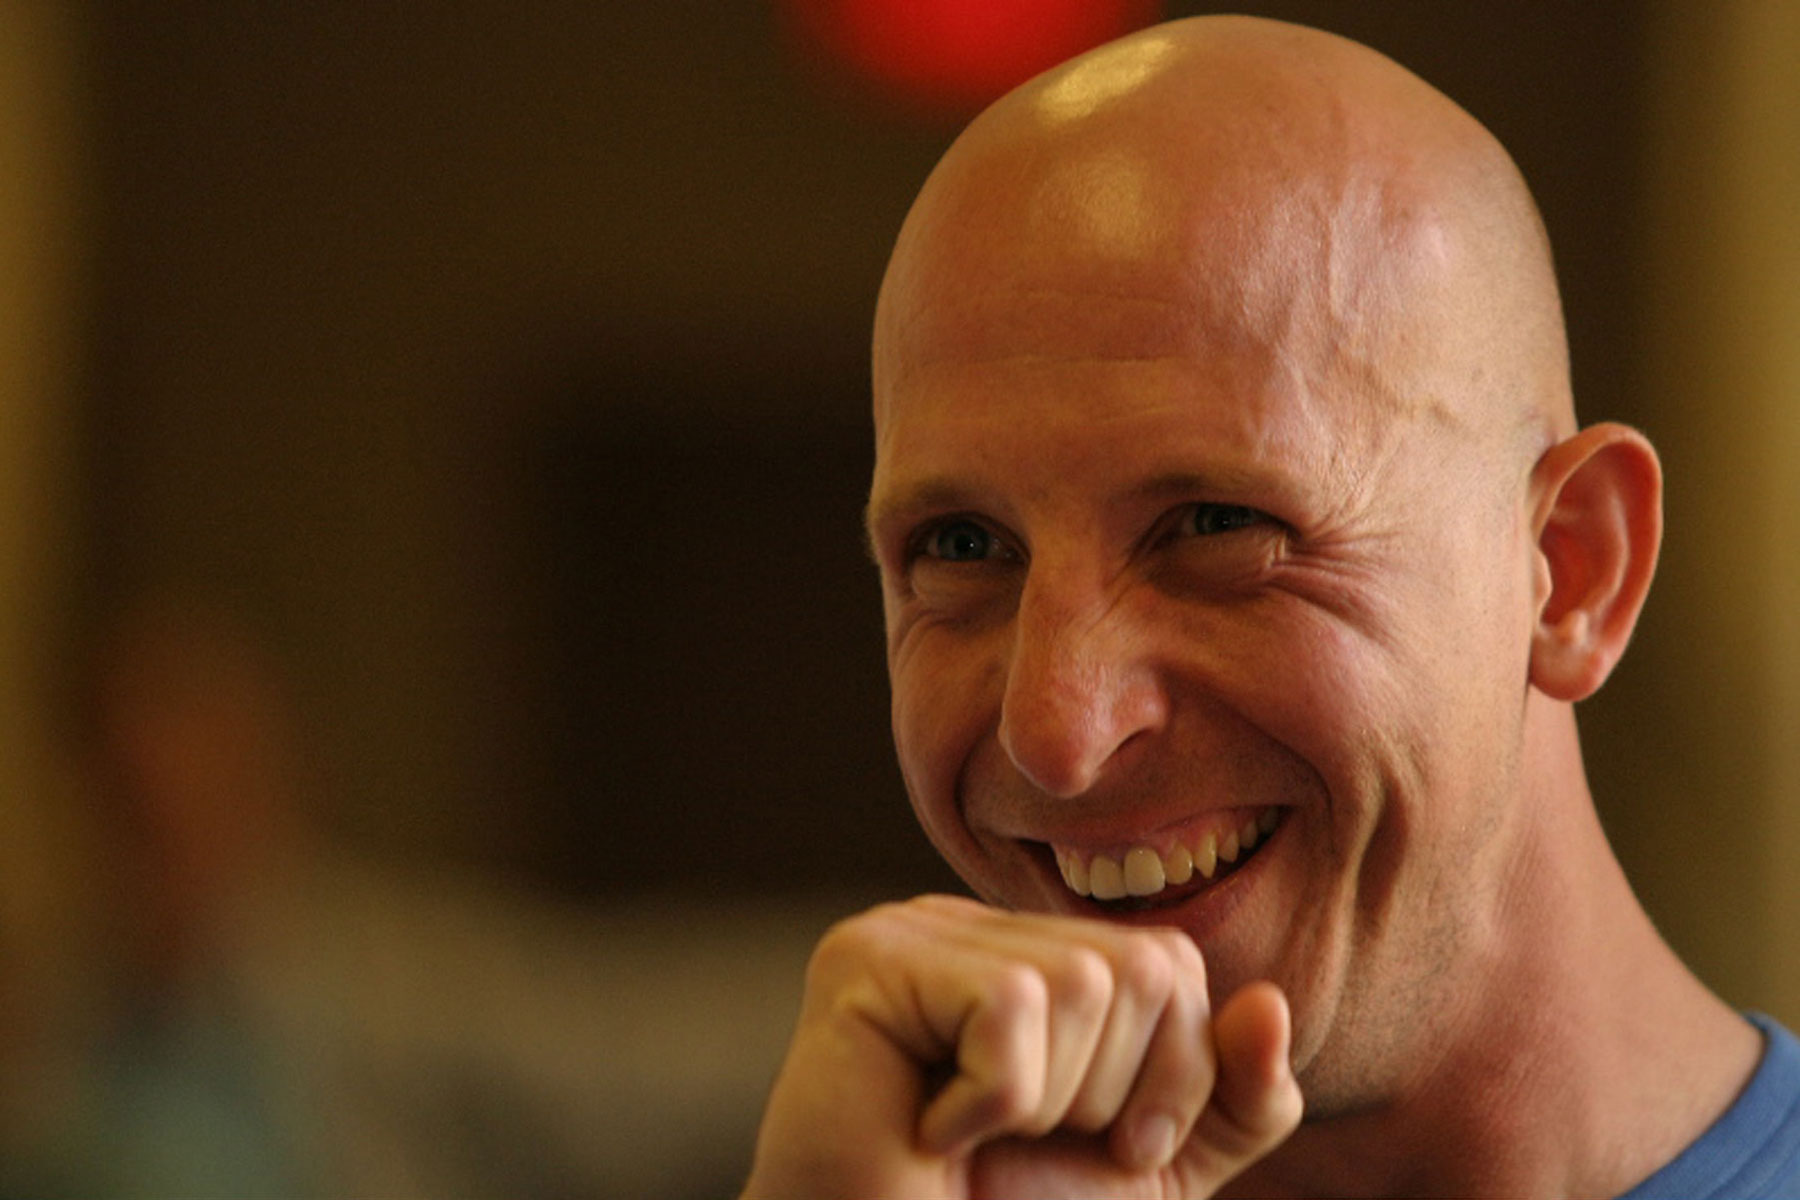 Bald man smiling with his fist held up to his chin